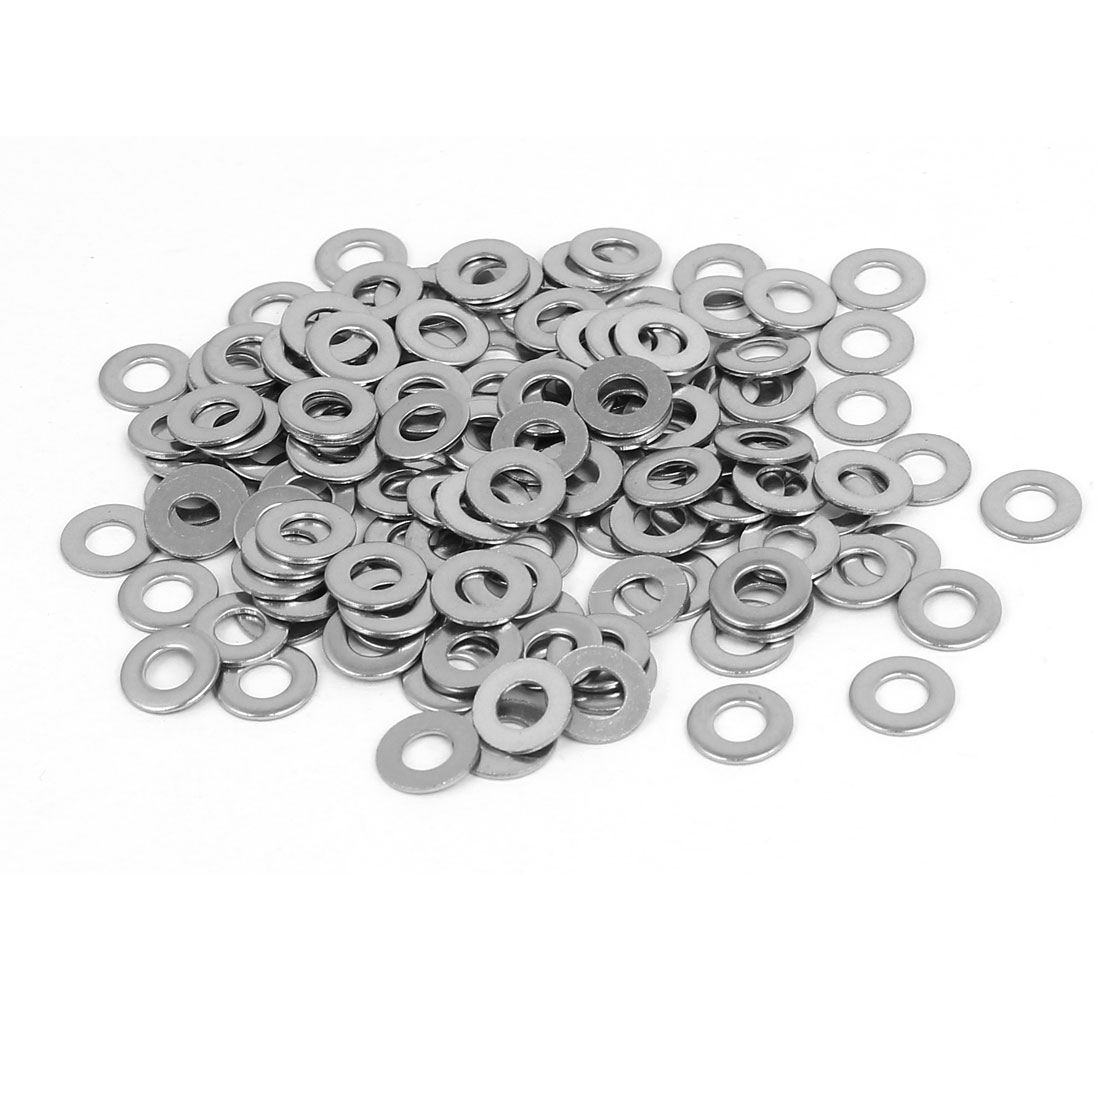 M4 304 Stainless Steel Flat Pads Washers Gaskets Fastener Silver Tone 200PCS